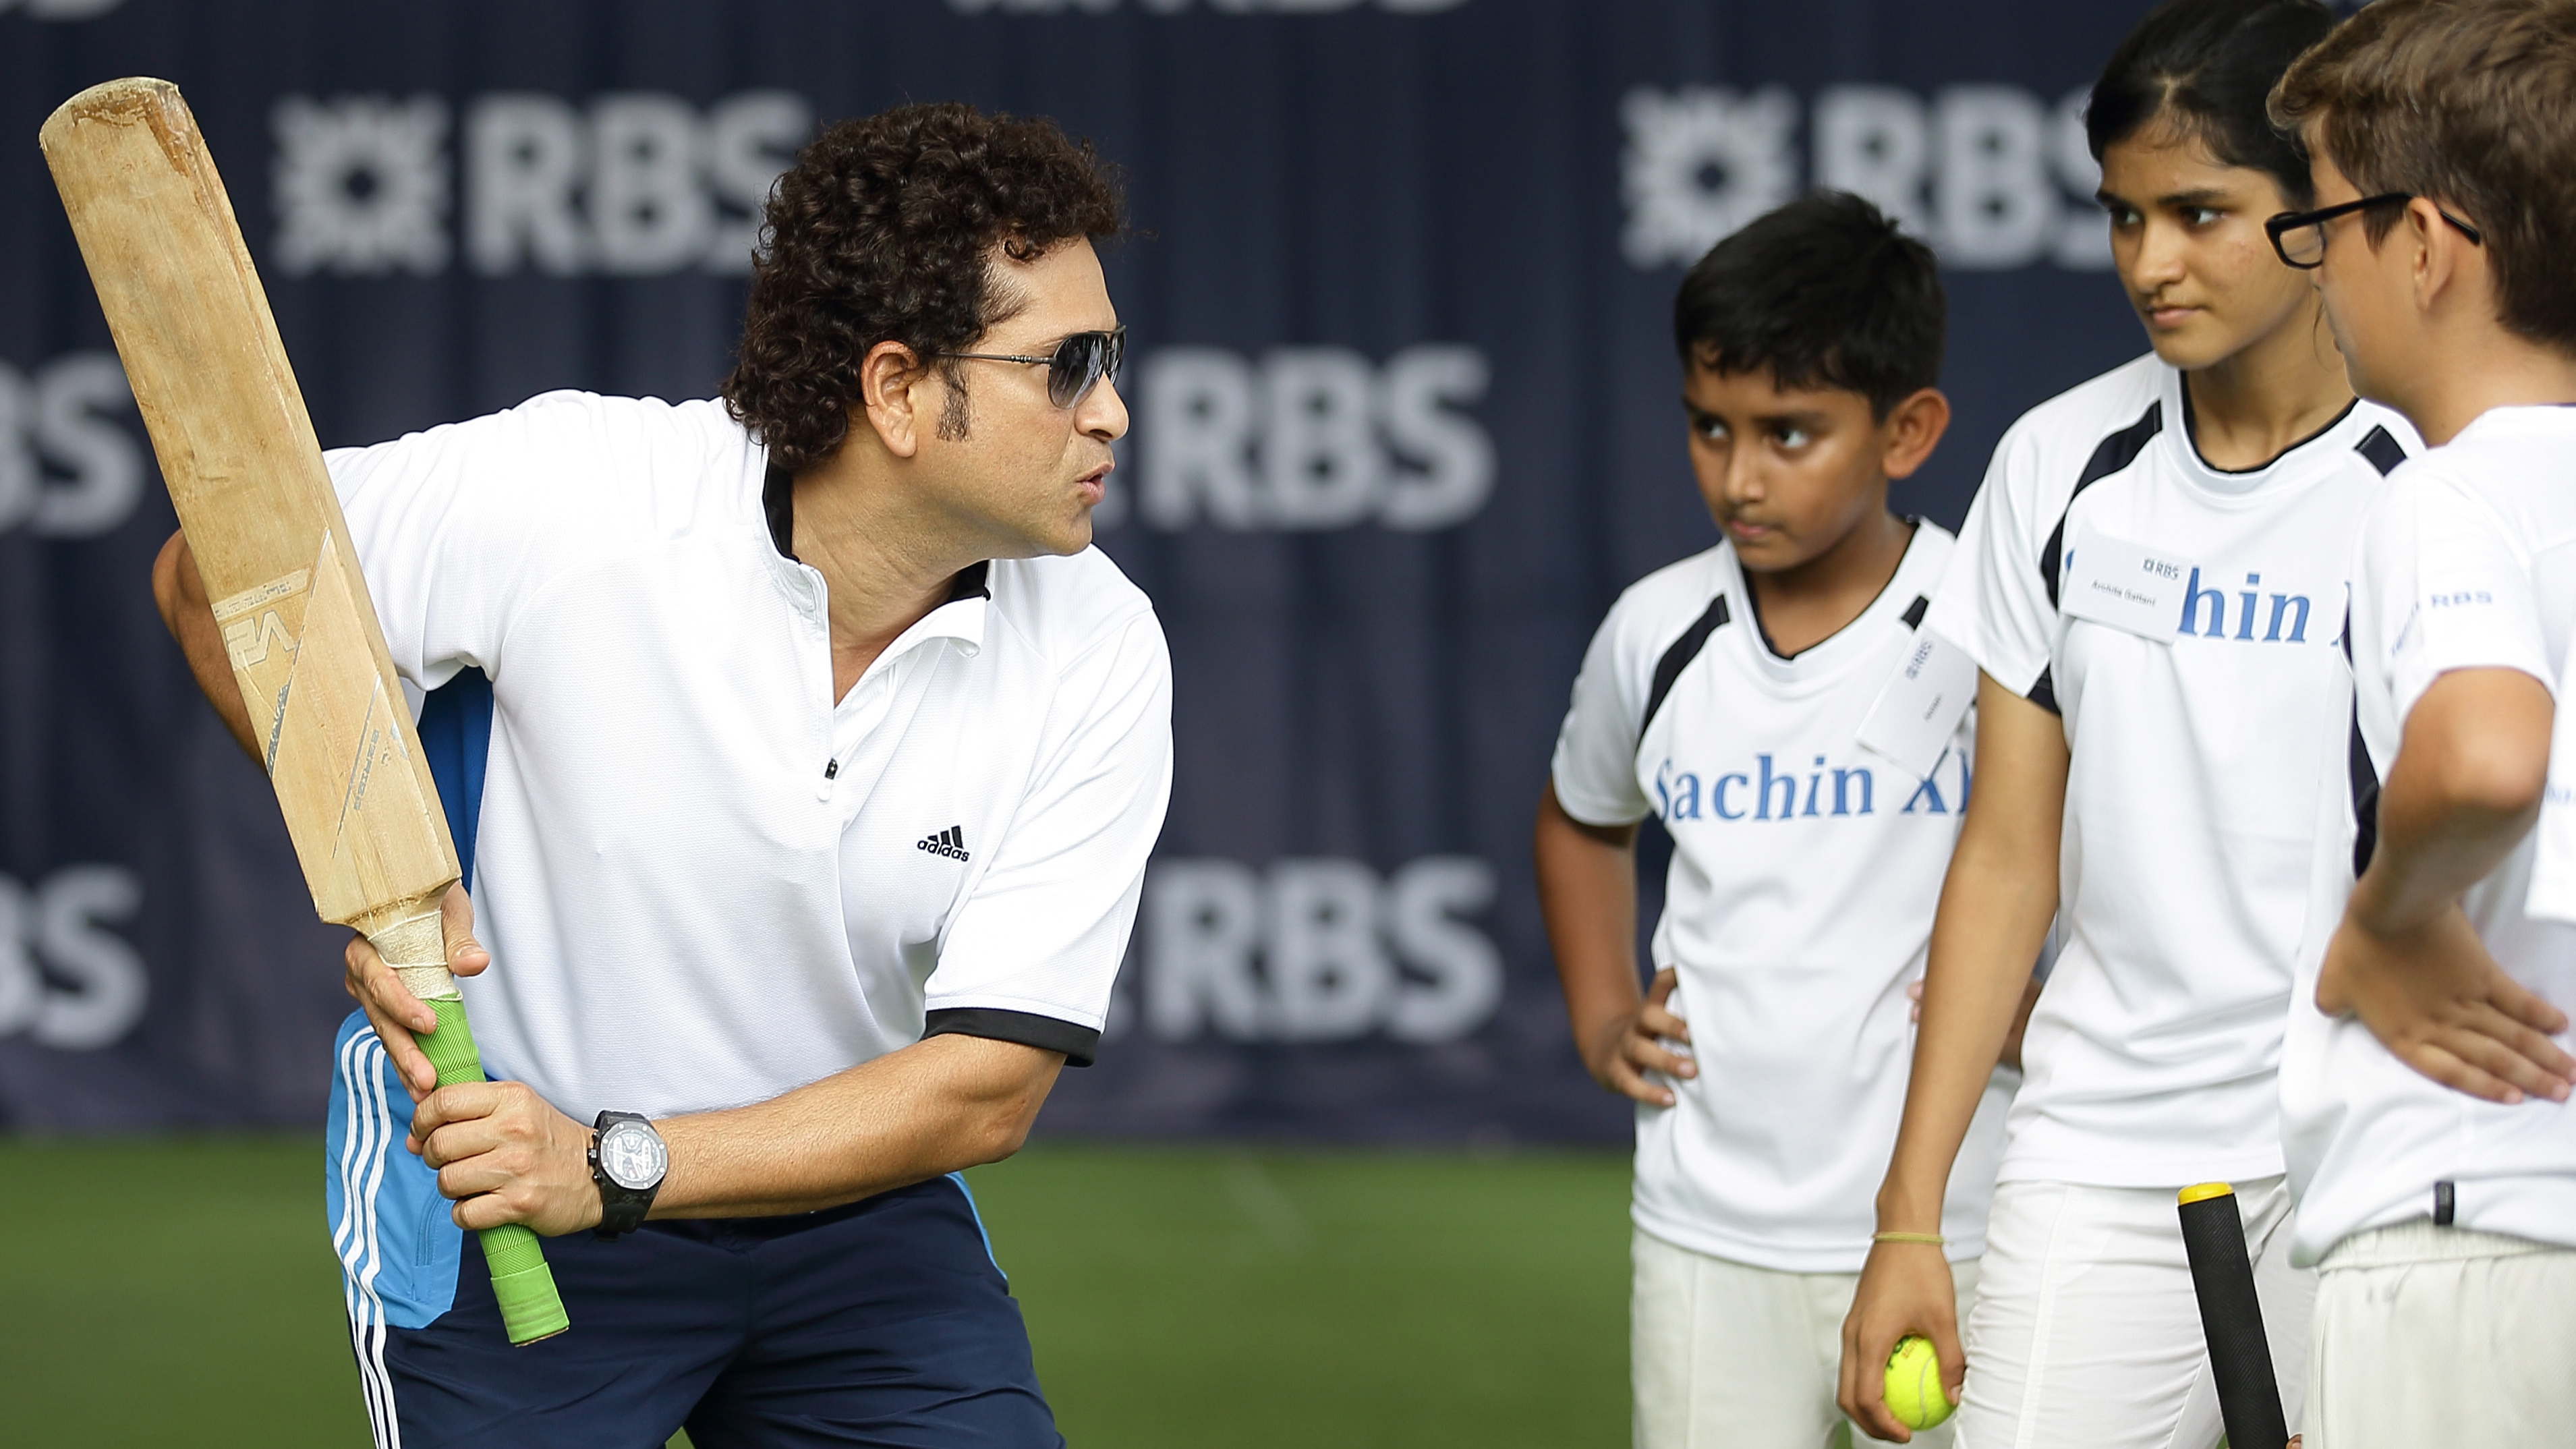 Sachin Tendulkar aims to take his cricket academy beyond traditional pockets